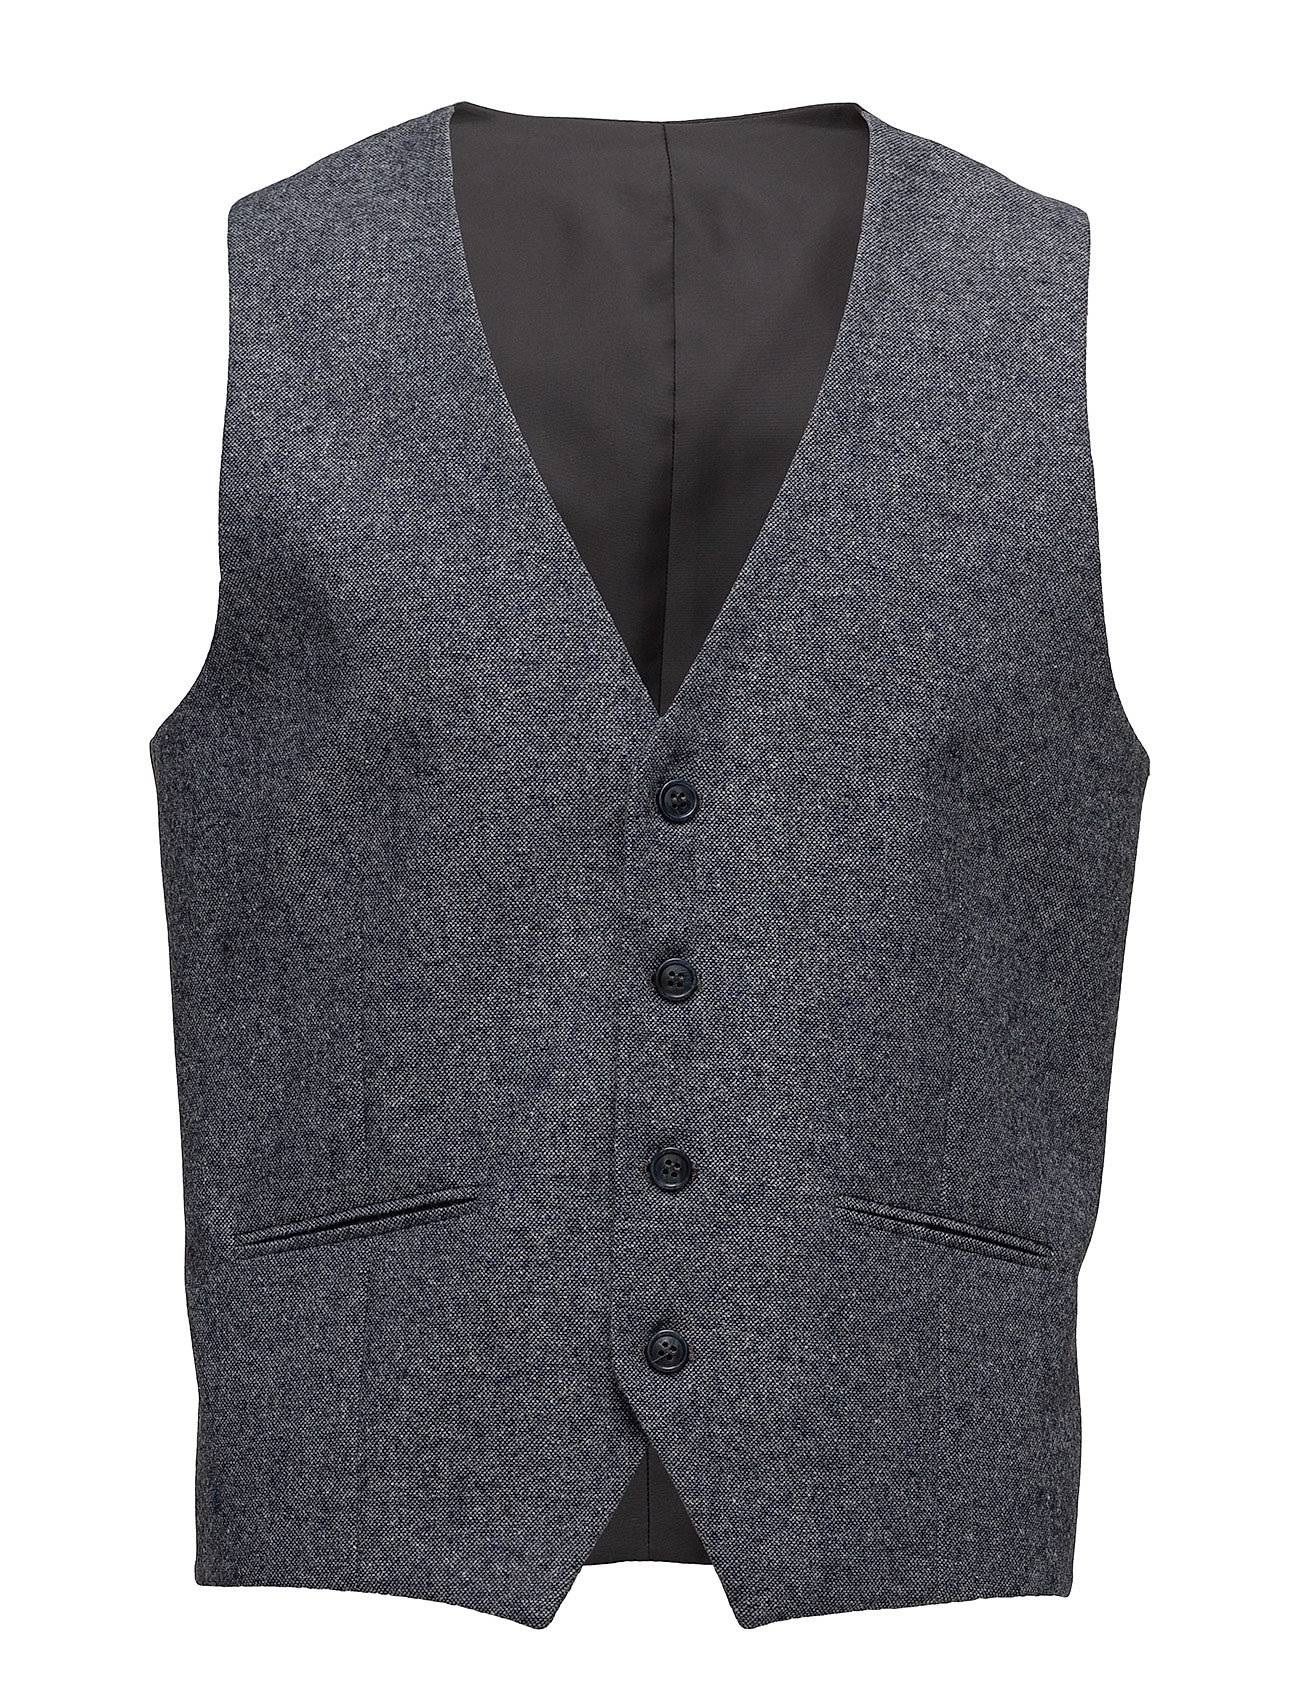 Selected Homme Shdone-Mylo Iver Grey Donegal Waistcoat